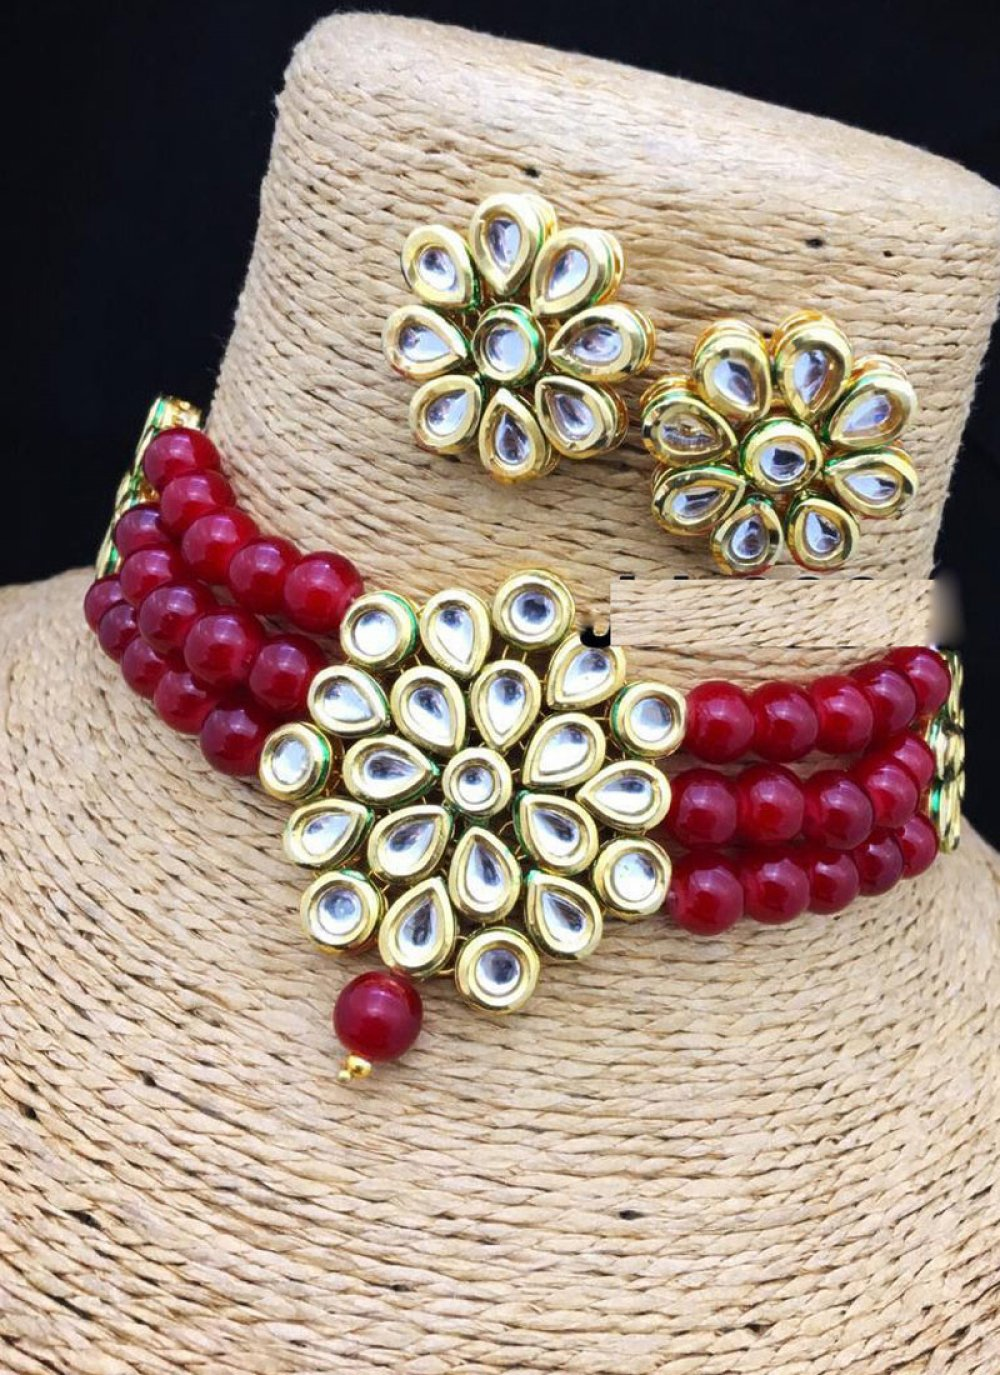 Stone Work Necklace Set in Gold and Maroon